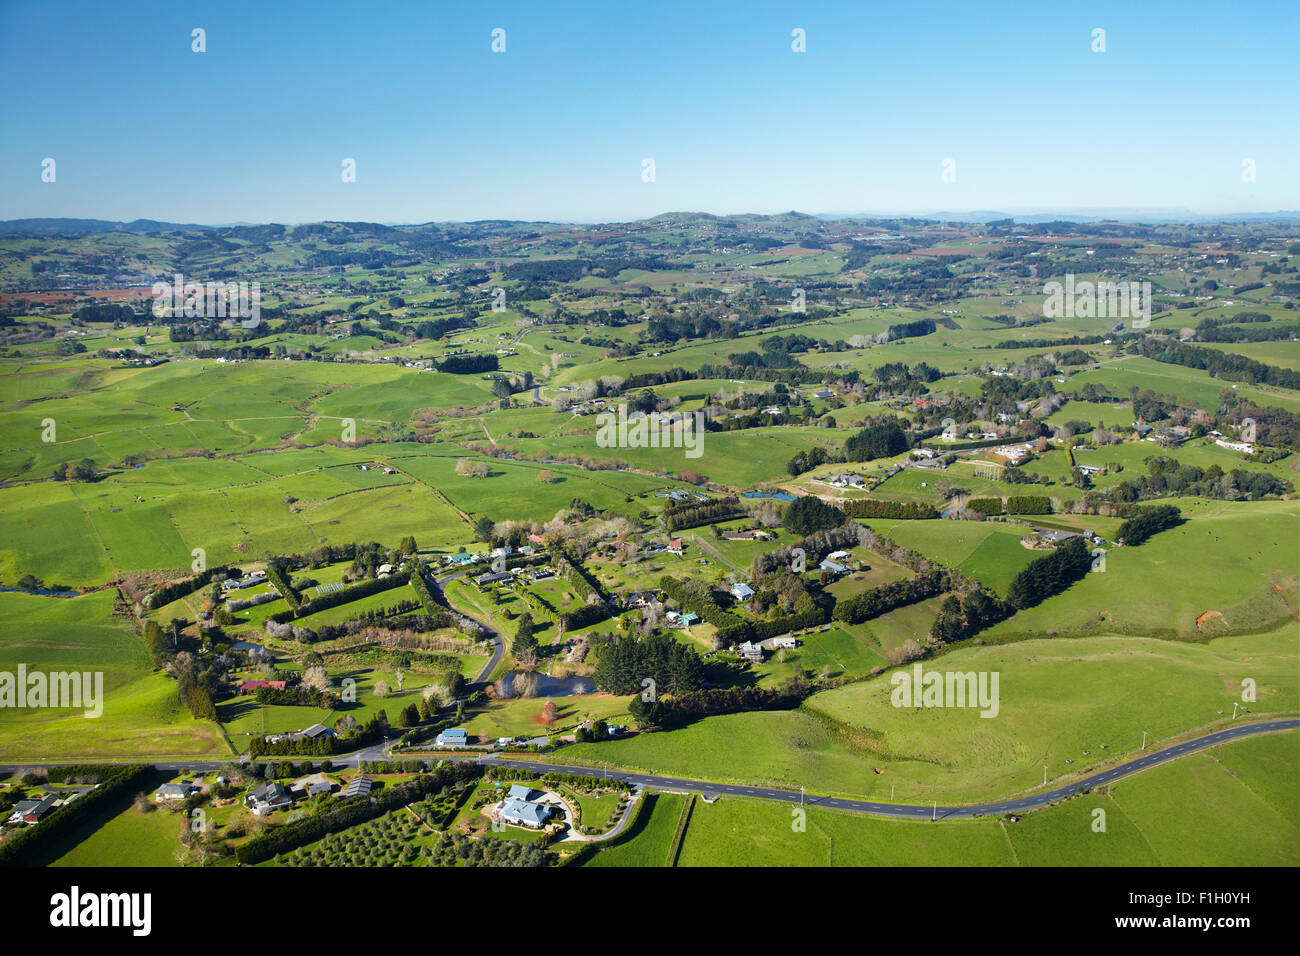 Farmland and lifestyle properties, near Pukekohe, South Auckland, North Island, New Zealand - aerial - Stock Image